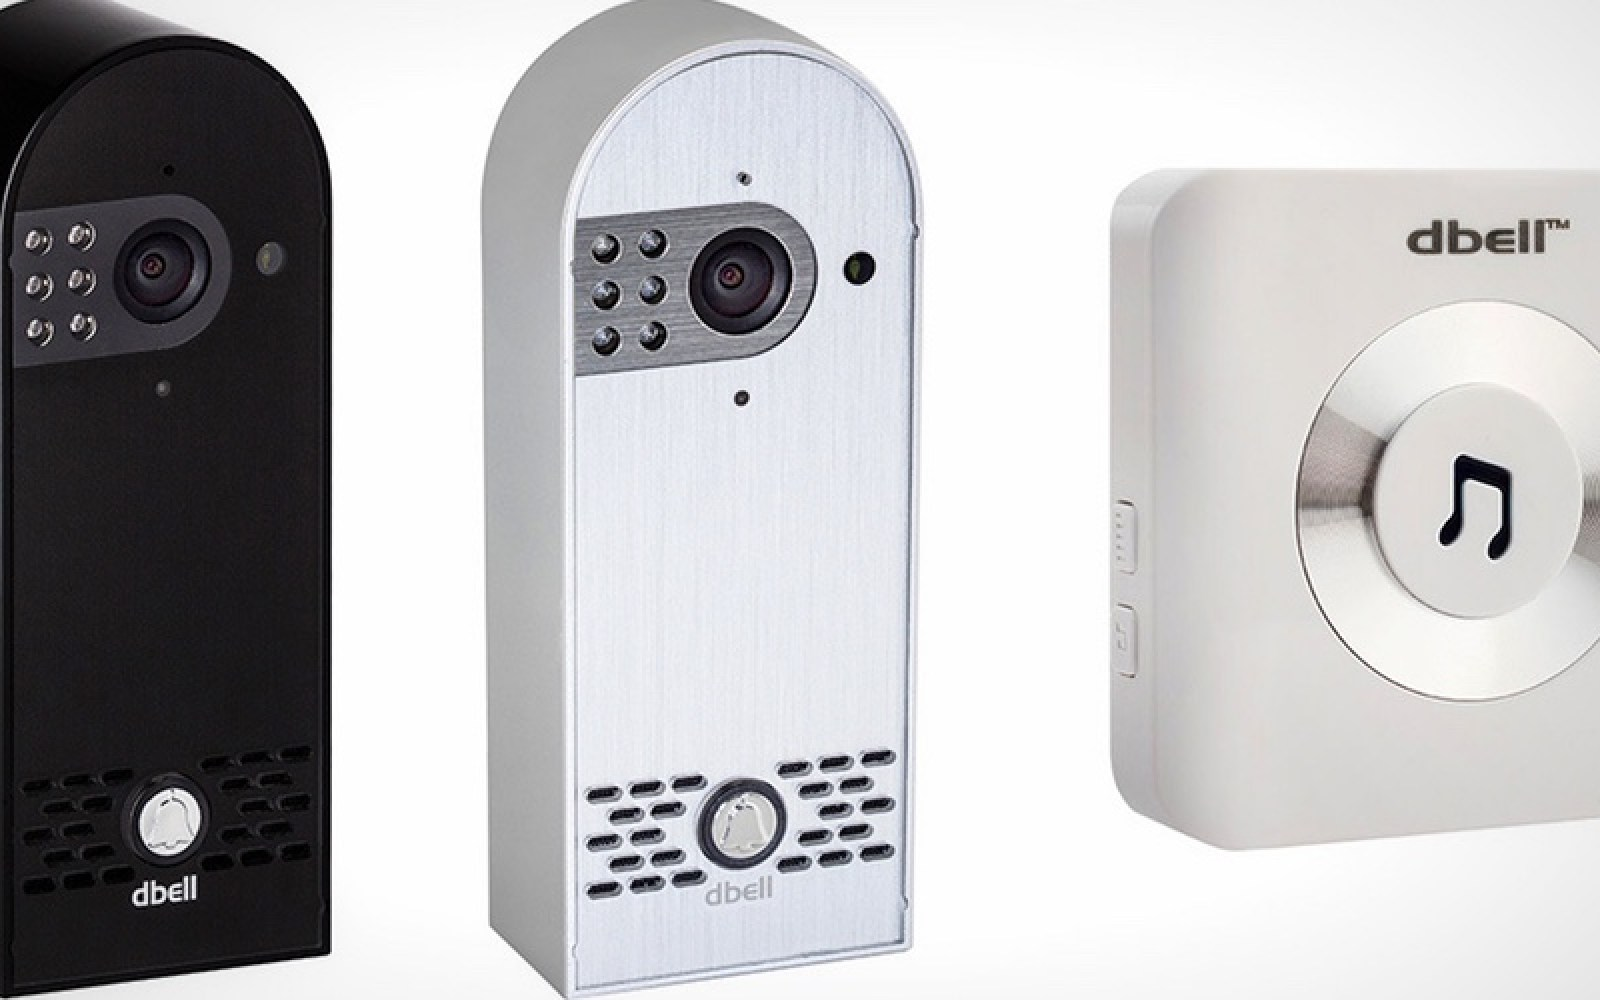 """Dbells's HD Live is the """"smartest Video Doorbell and Security Cam available"""""""